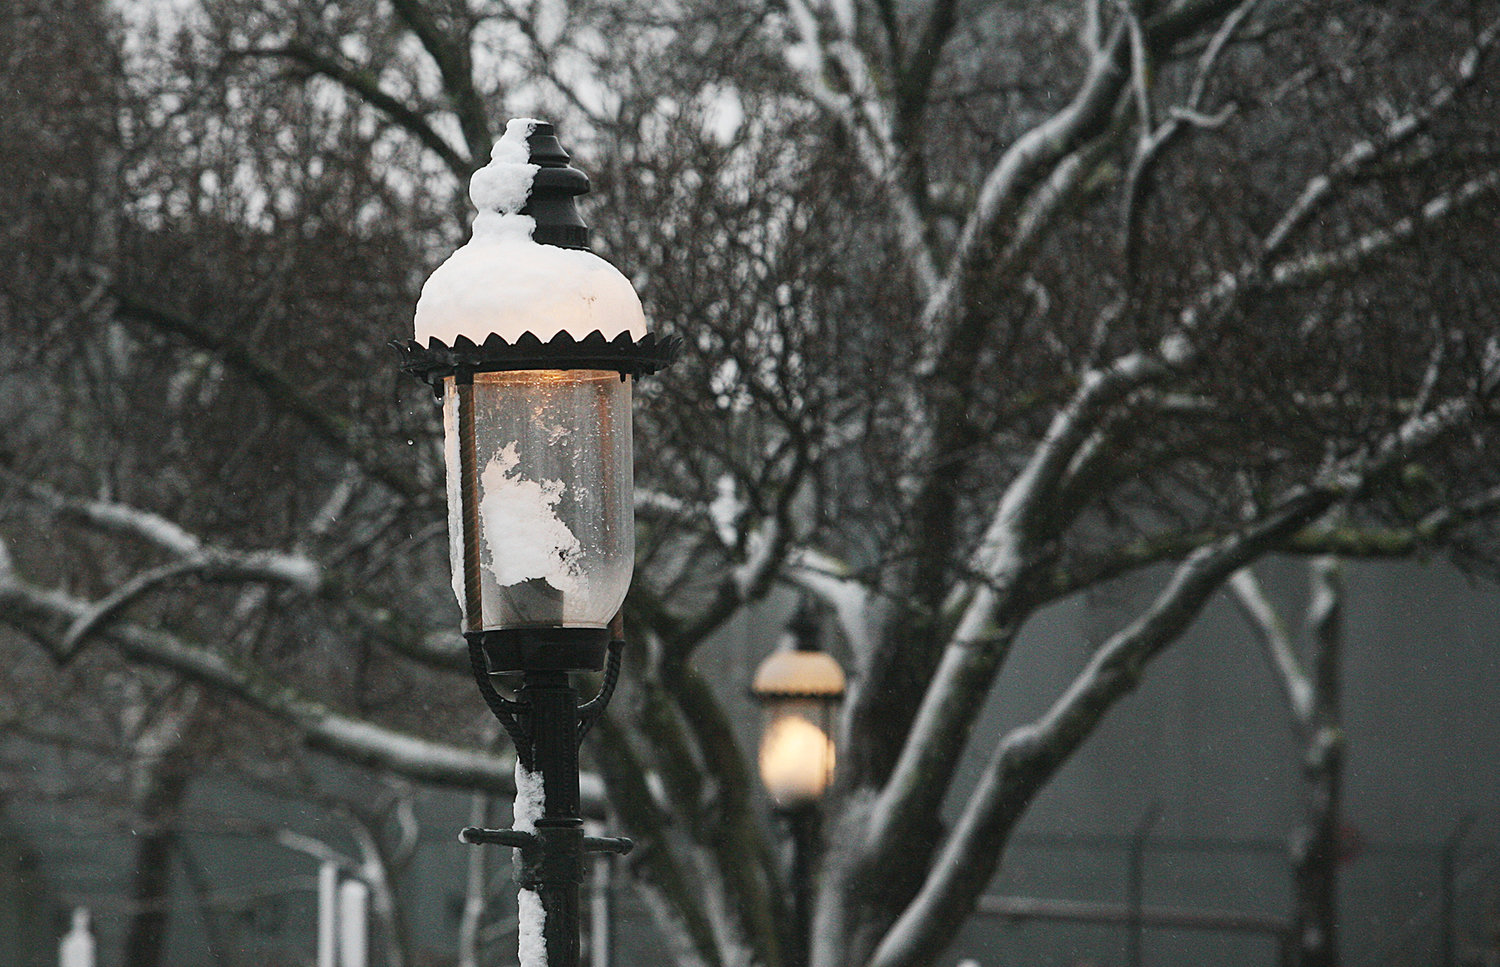 WINTER SCENES -- February 7, 2021 -- Street lamps covered in snow glow on Straight Wharf during Sunday's snow storm. Photo by Ray K. Saunders